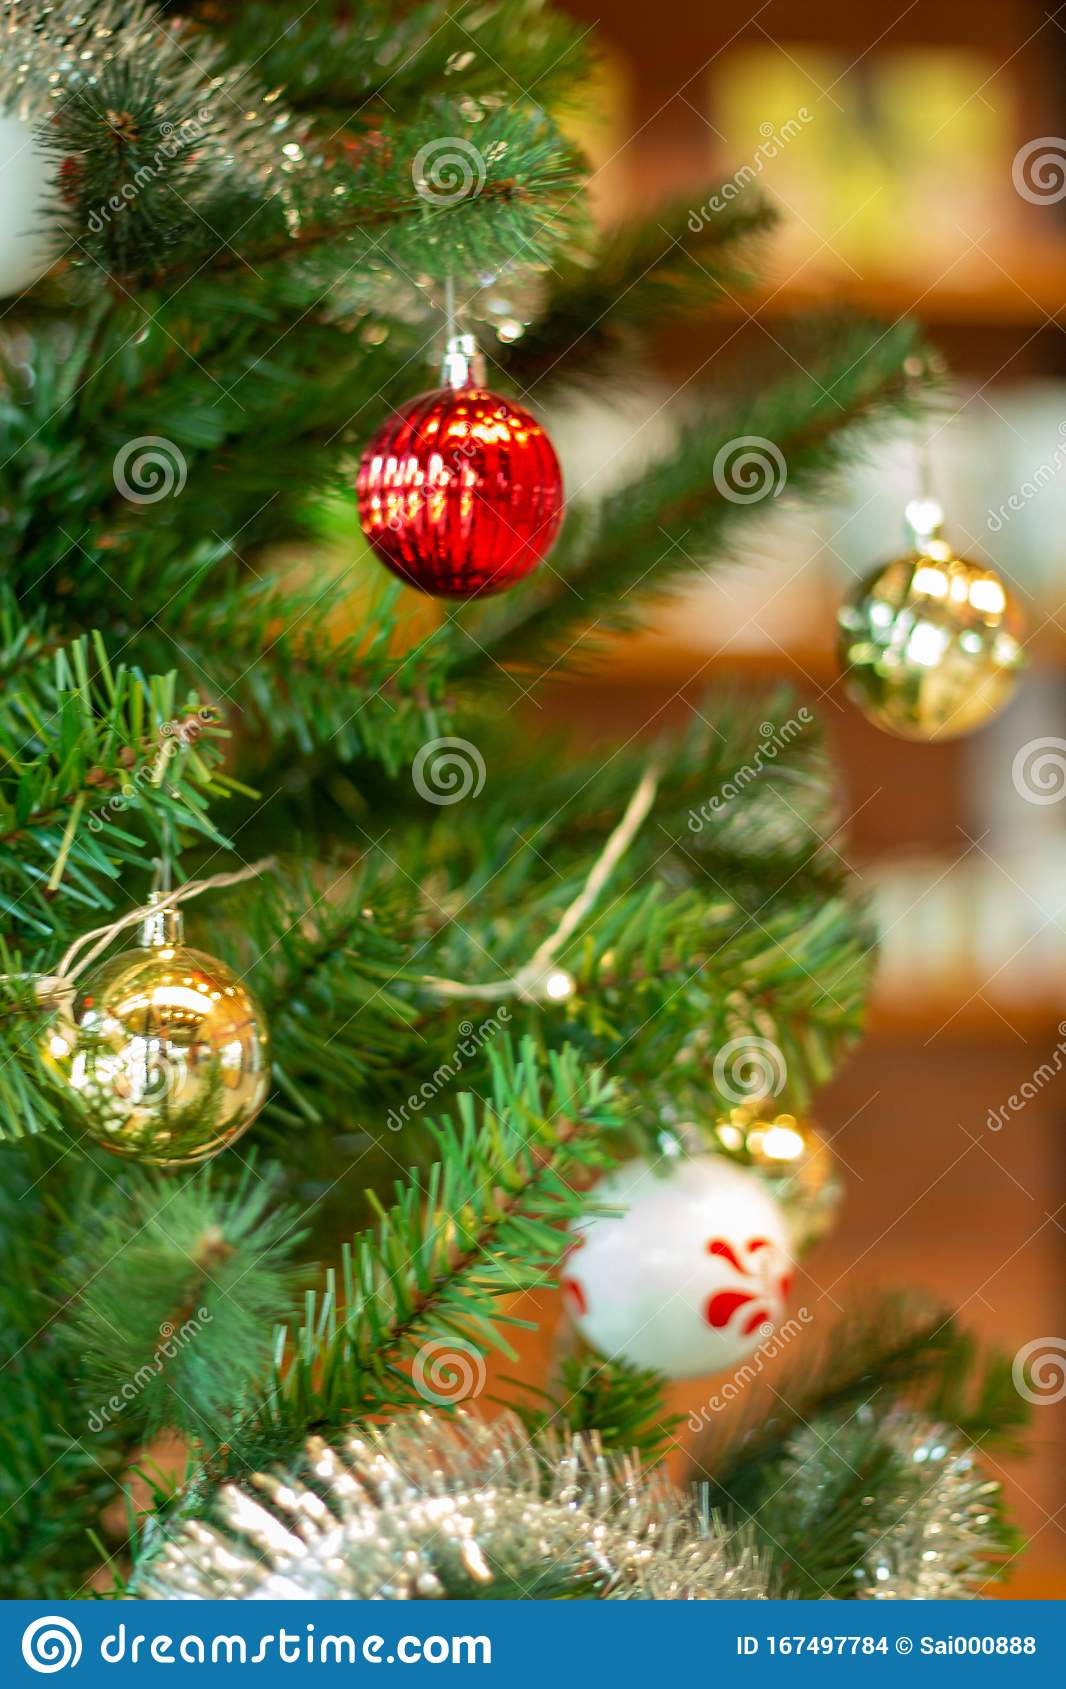 Red Ball On A Christmas Tree With A Garland On The Background Of A Wooden Wall Stock Photo Image Of Fruit Chocolate 167497784